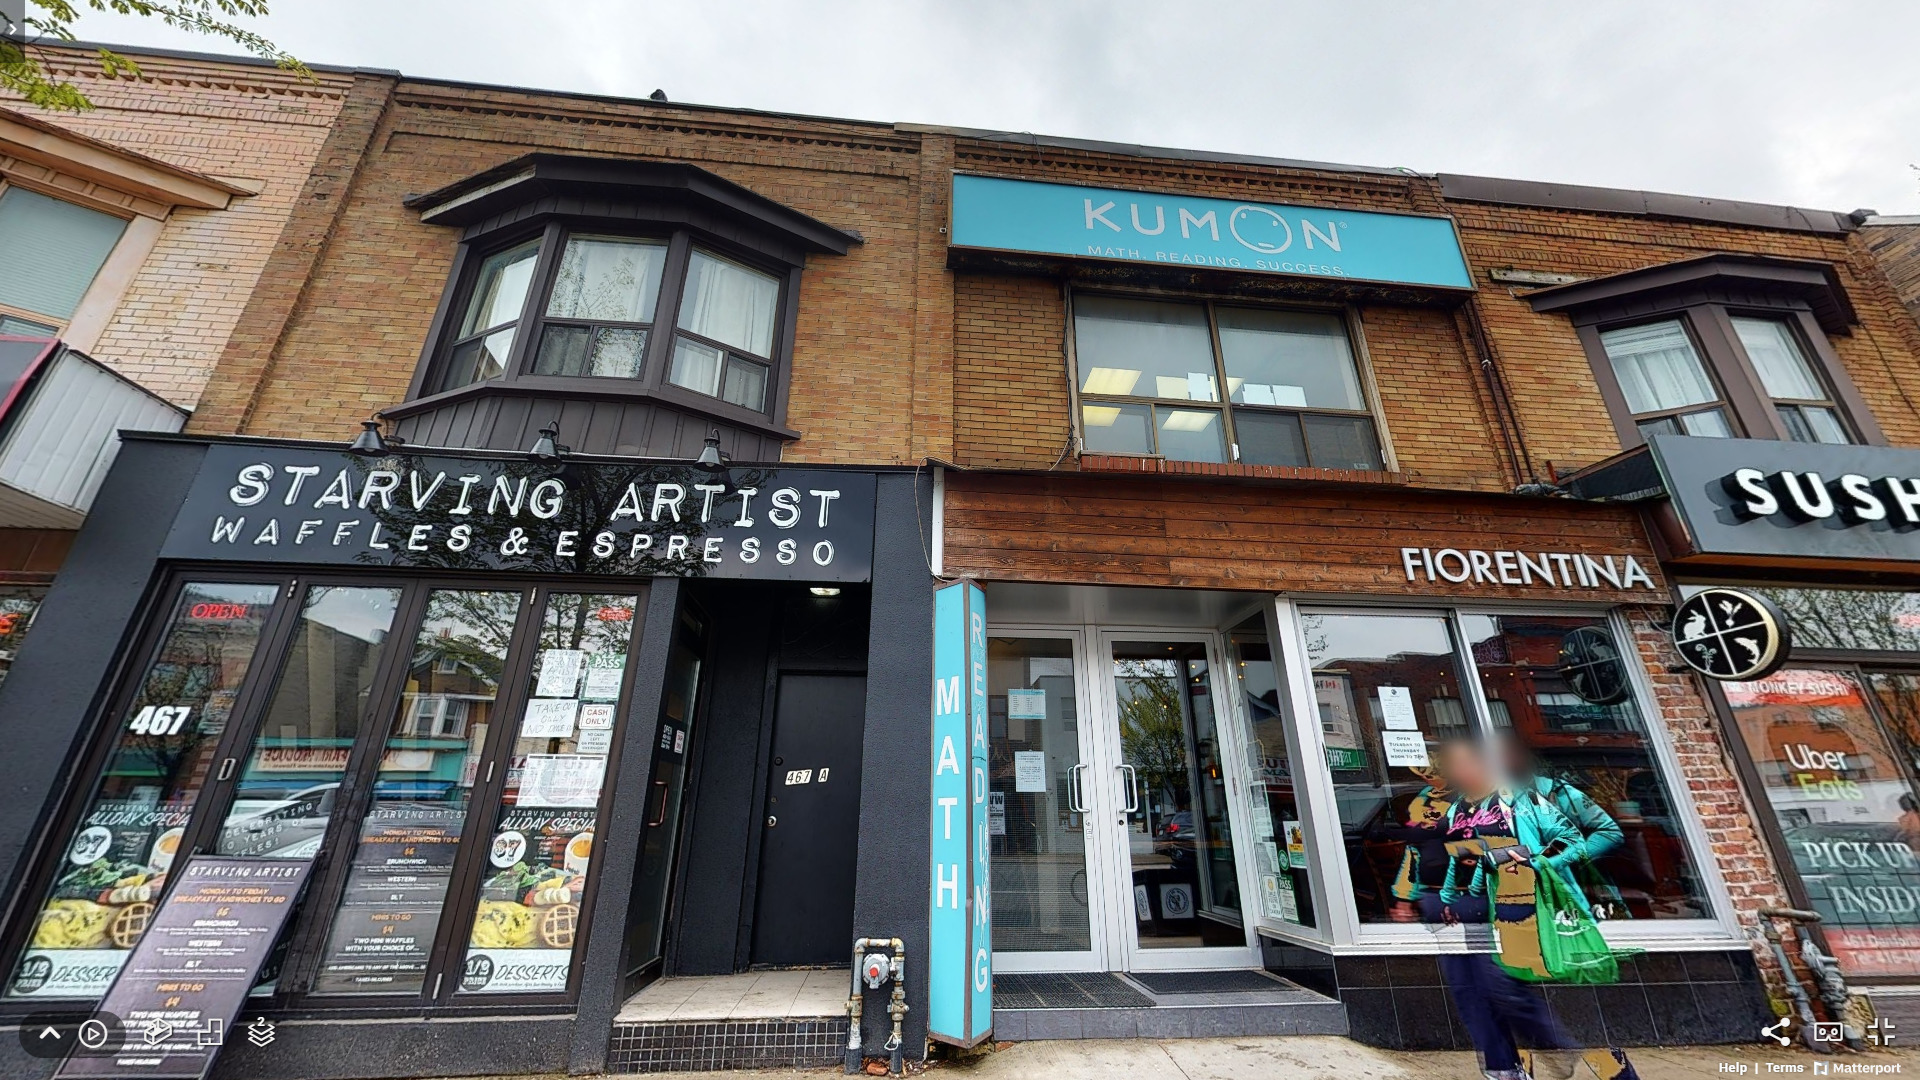 463 Danforth Ave facade with Fiorentina restaurant and Kumon.